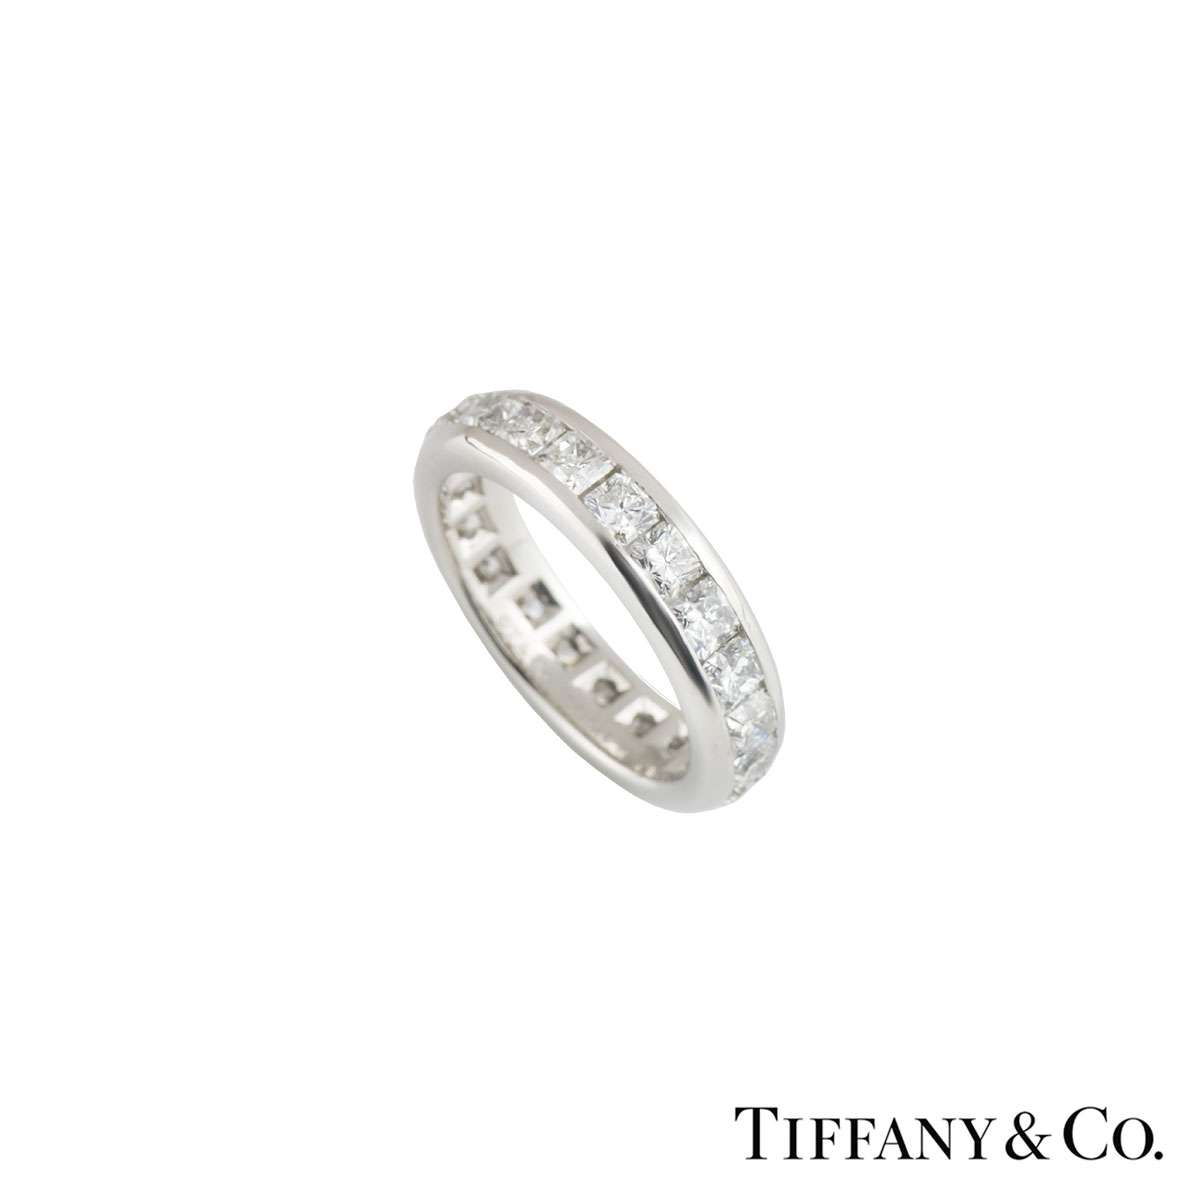 c069a9fea Tiffany & Co Diamond Lucida Eternity Ring 2.73ct